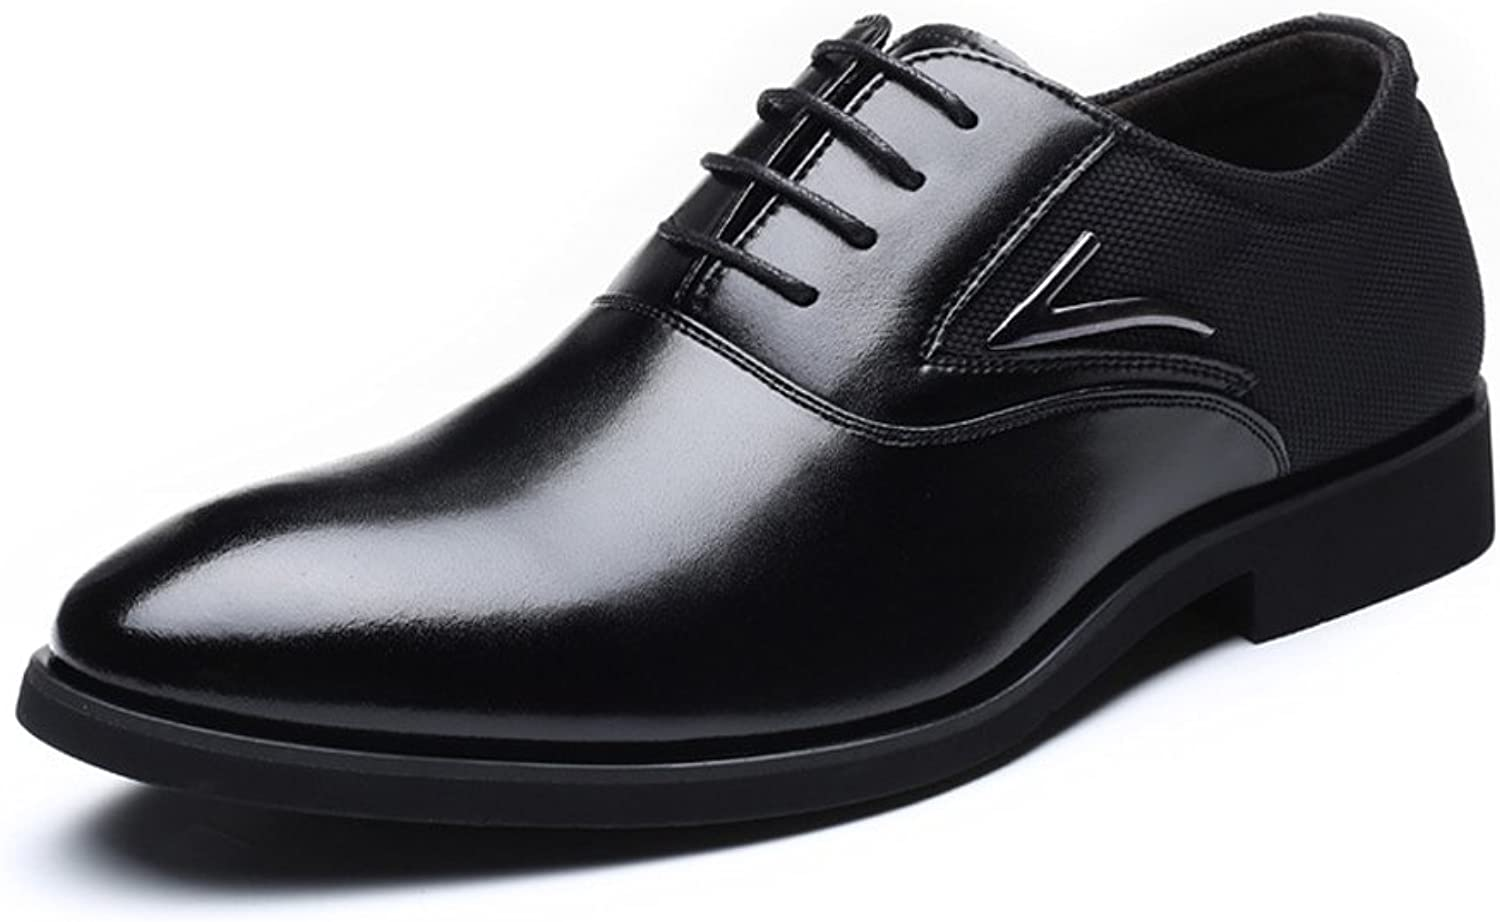 ZLQ Men's Formal Business shoes Smooth PU Leather & Canvas Splice Upper Lace Up Breathable Lined Oxfords Breathable shoes